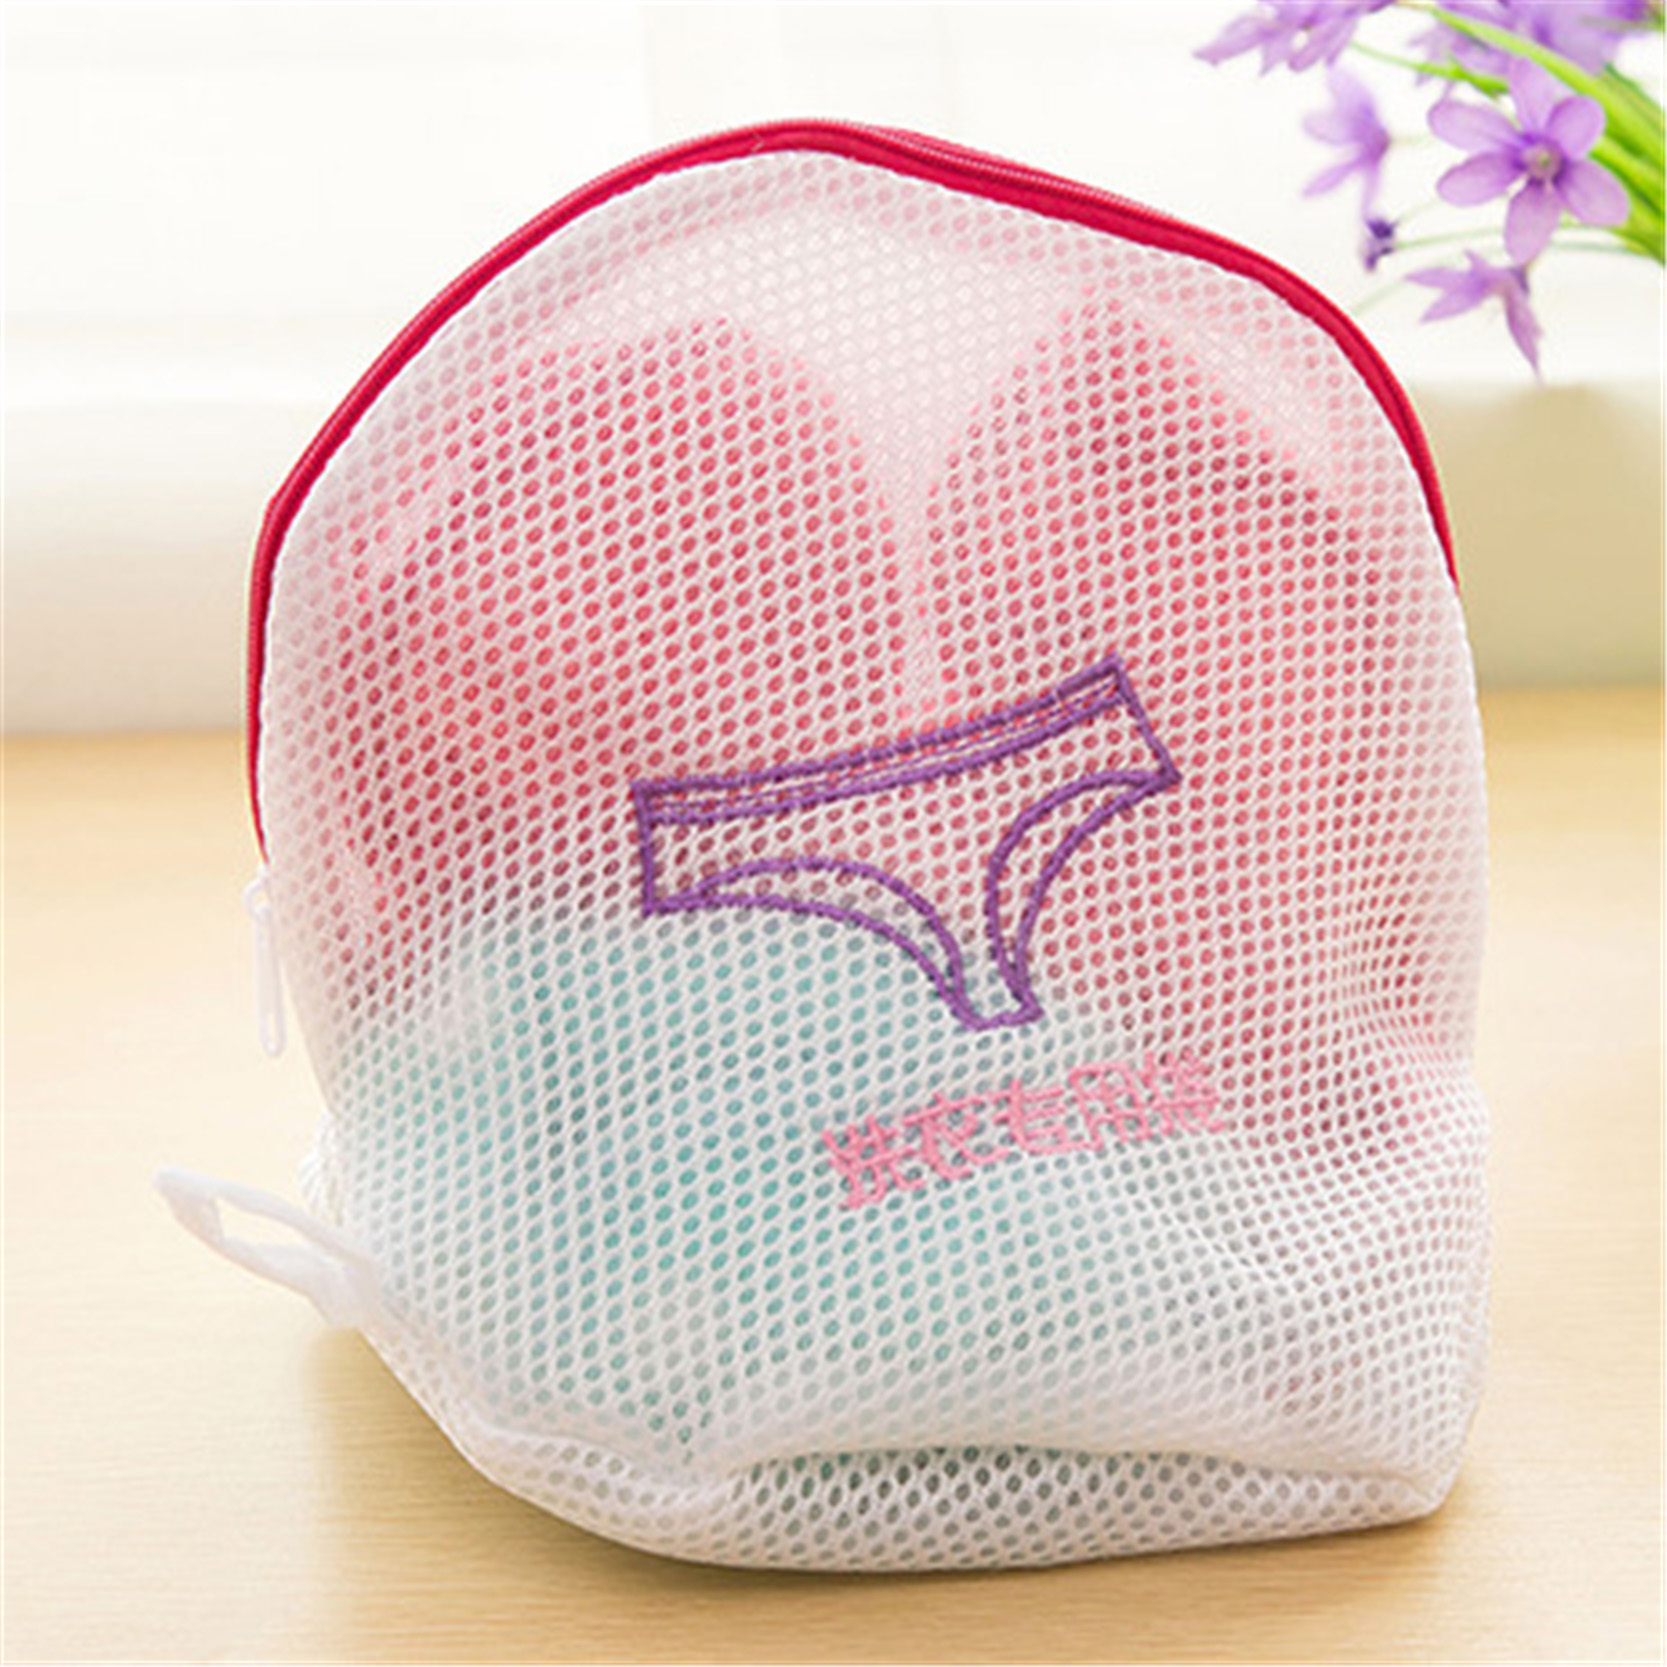 2016 Bra Underwear Clean Sanitary Convenience Thickened Laundry Bag Japanese Fine Embroidery mesh bag Household Cleaning Tools(China (Mainland))